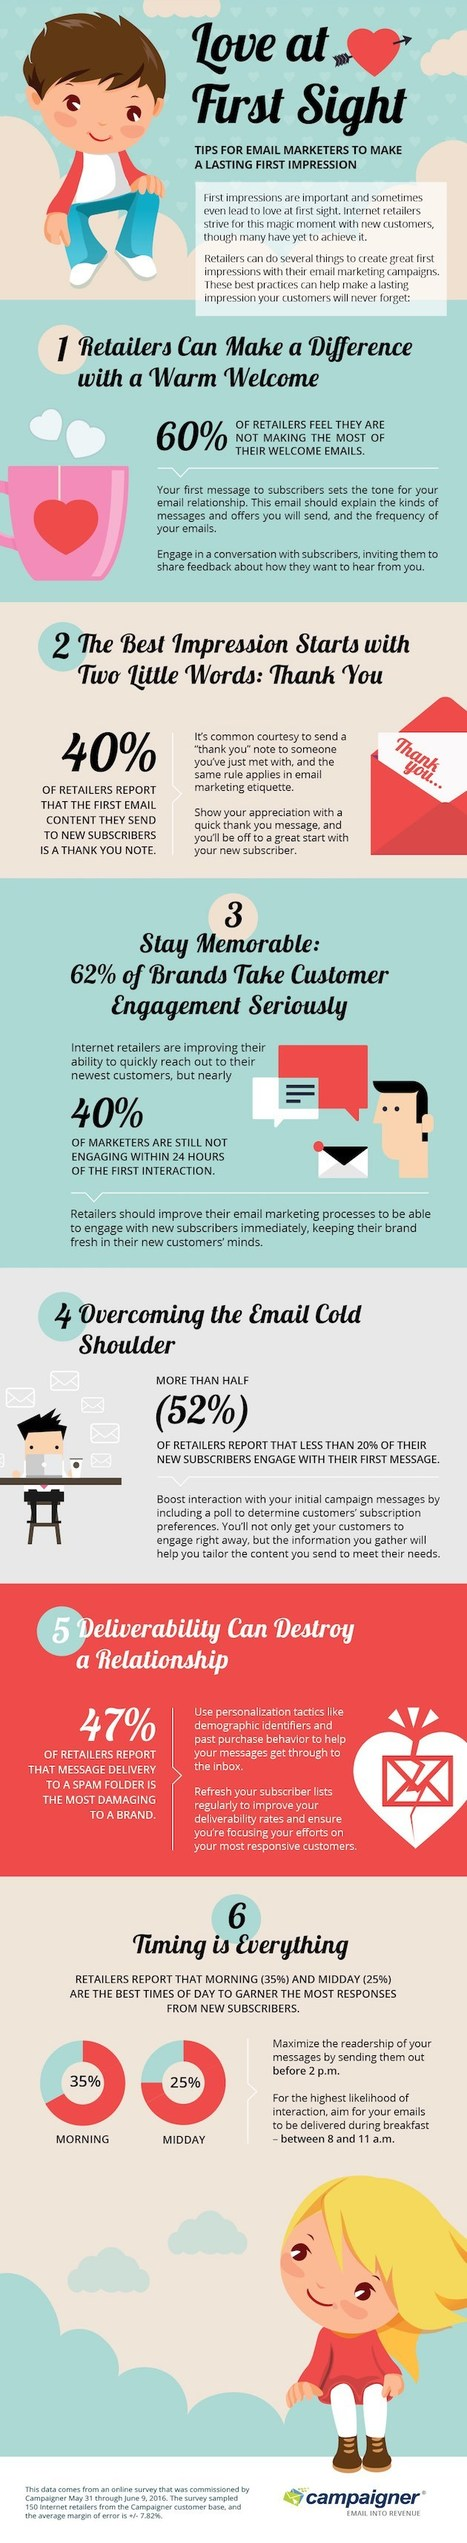 How Retailers Use Welcome Emails to Engage Consumers [Infographic] | New Customer & Employee Management | Scoop.it